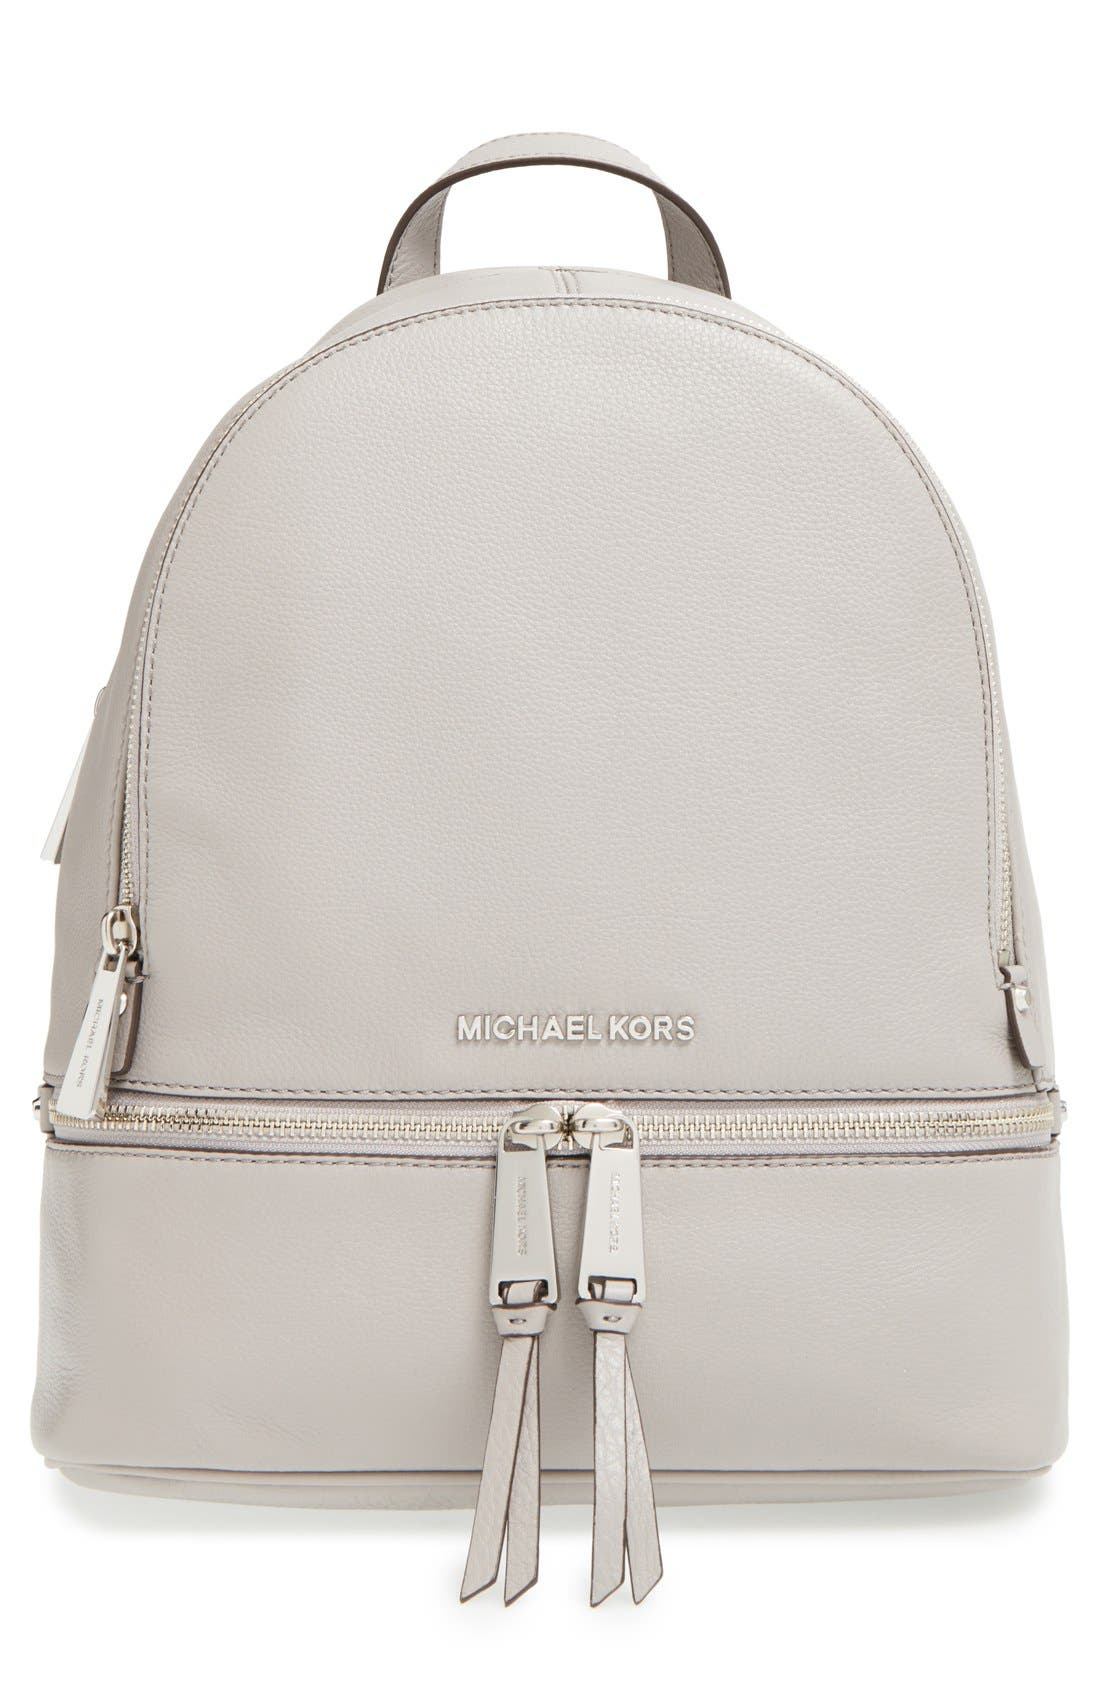 'Small Rhea Zip' Leather Backpack,                         Main,                         color, Pearl Grey/ Silver